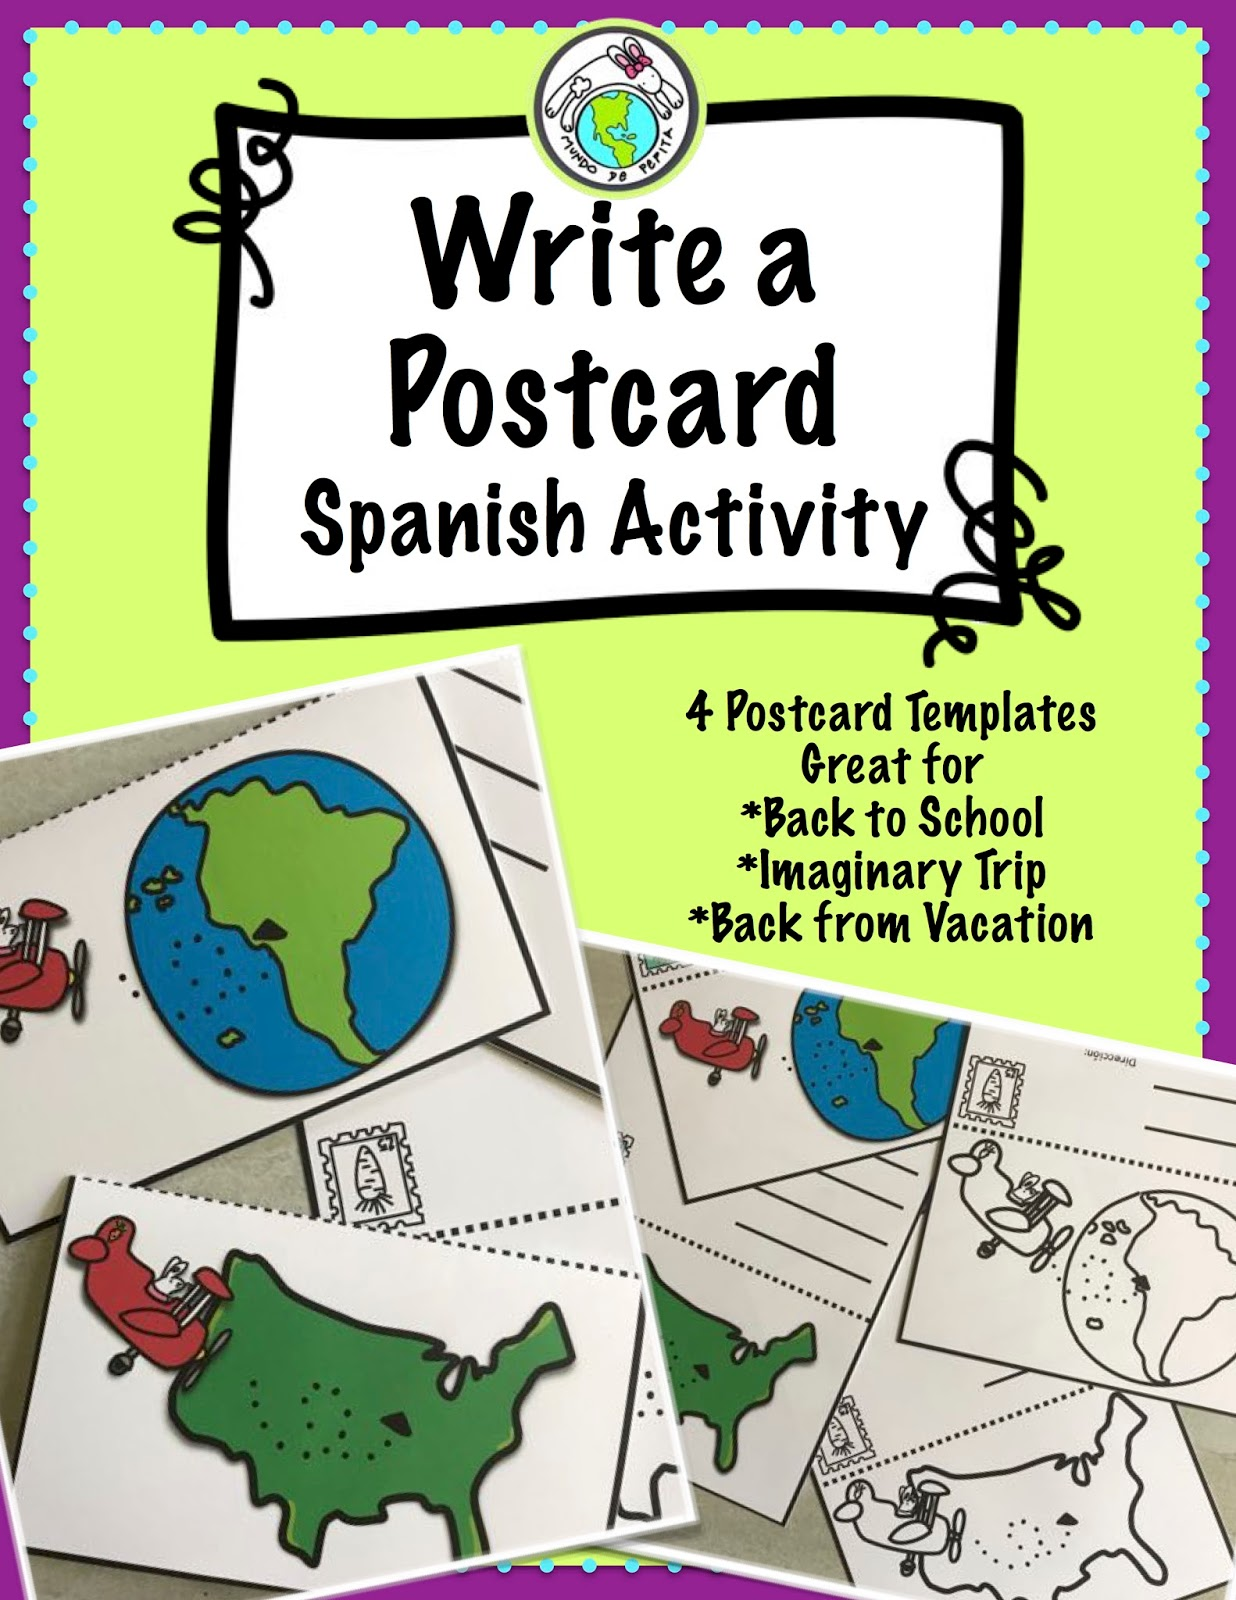 Where Did You Go Fun Back To School Activity For World Language Classes